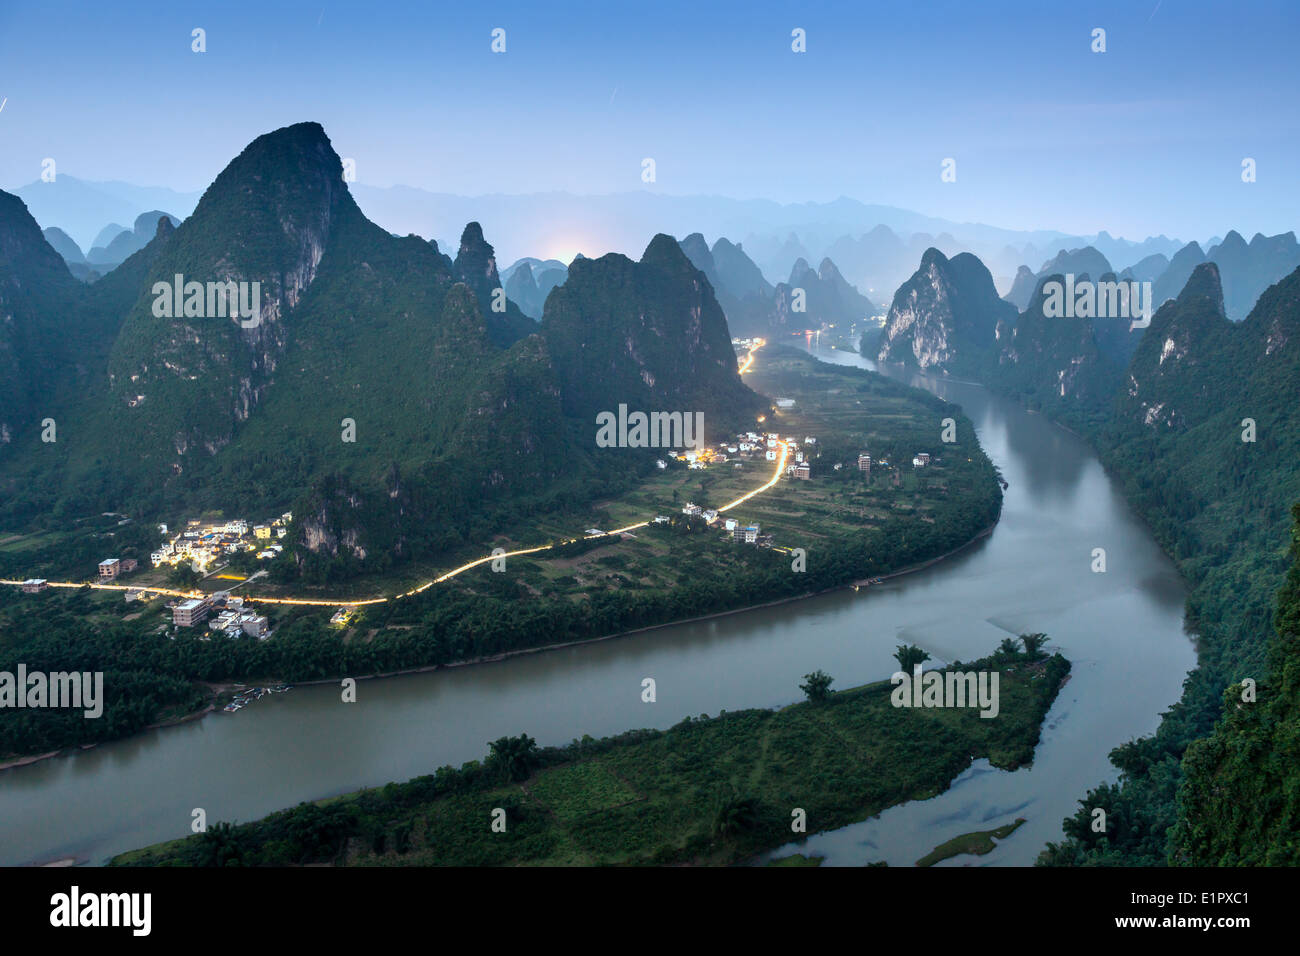 Karst mountain landscape on the Li River in Xingping, Guangxi Province, China. - Stock Image